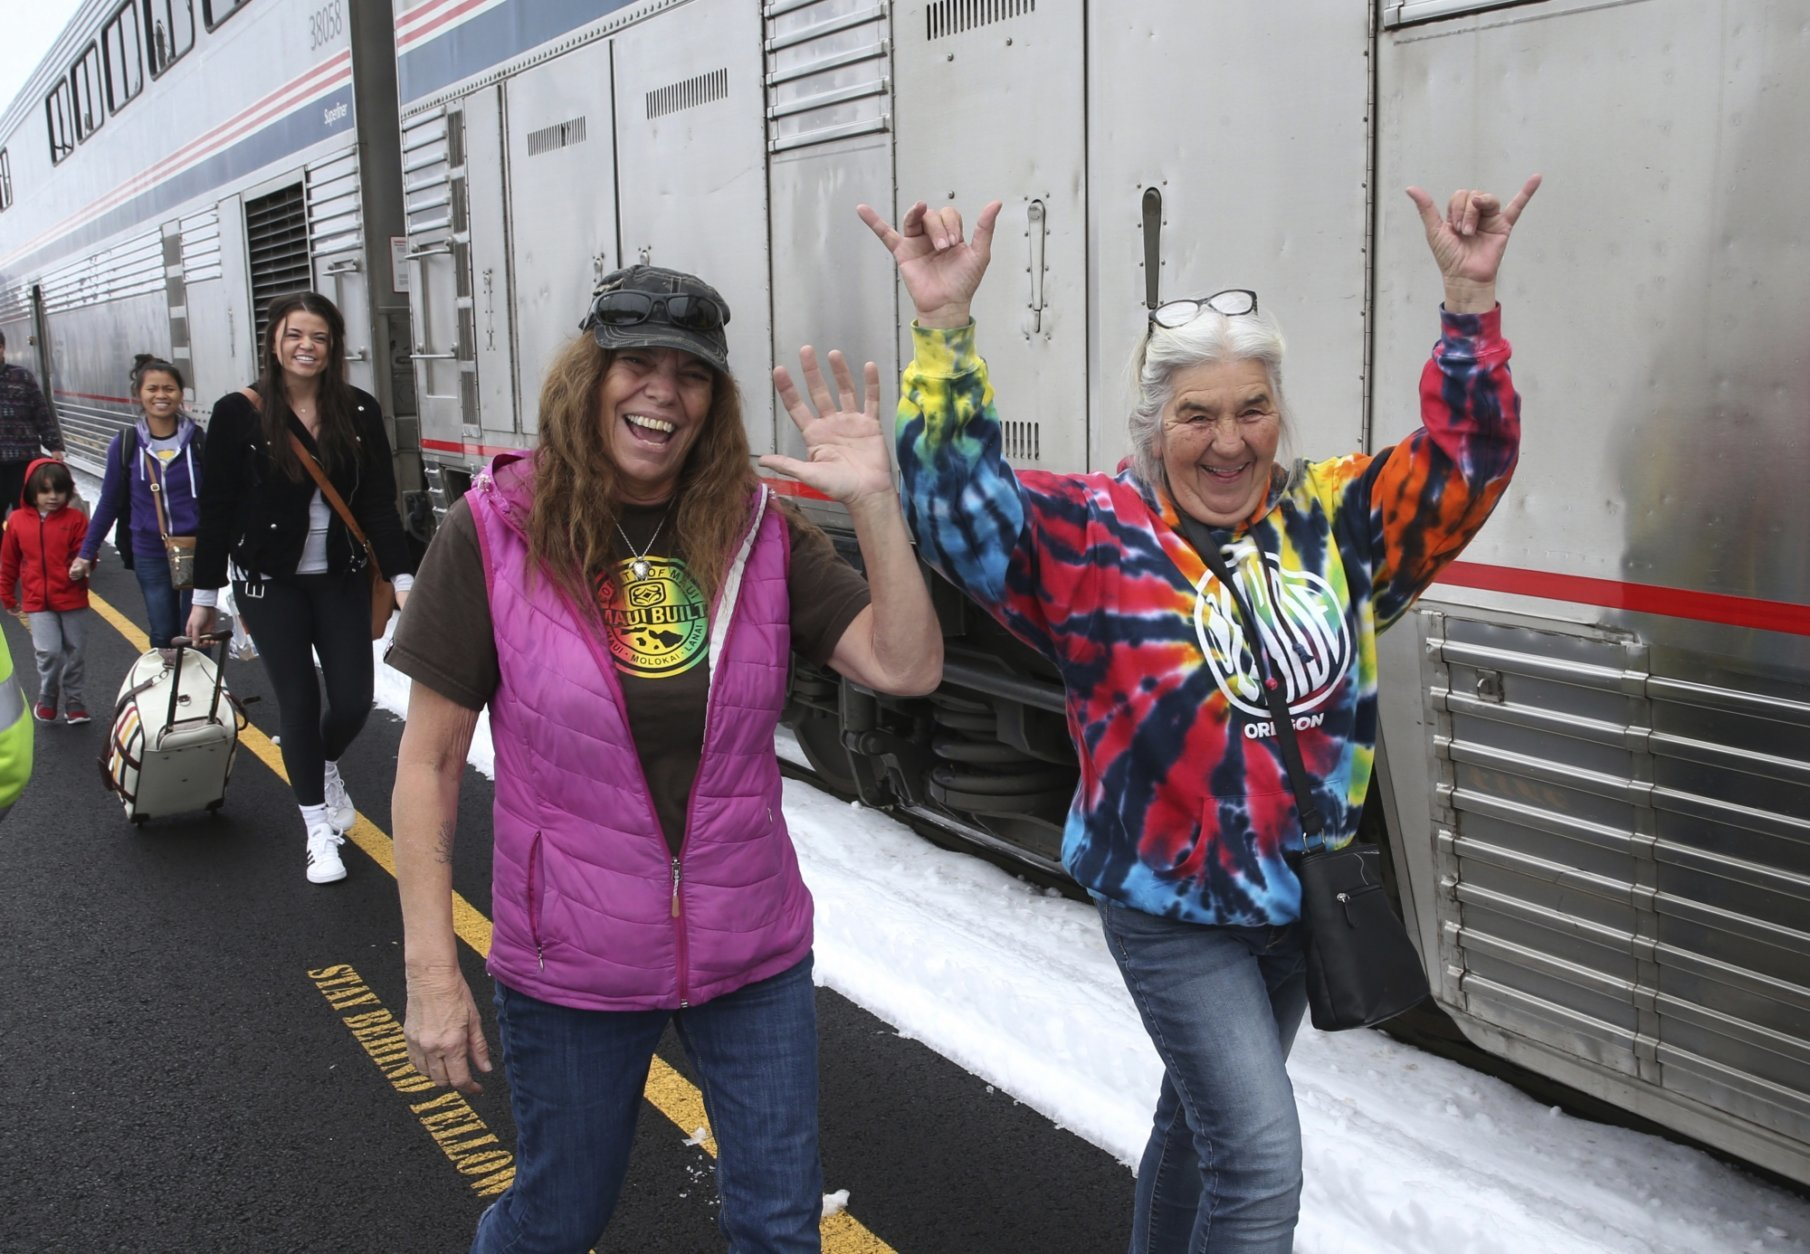 Patricia Bailey, center, and Annette Saba, right, celebrate as they disembark an Amtrak passenger train in Eugene, Ore. Tuesday, Feb. 26, 2019.  The train traveling from Seattle to Los Angeles with 183 passengers got stranded in the snowy mountains of Oregon for at least 36 hours, putting a strain on passengers as food, patience and even diapers ran short.  (AP Photo/Chris Pietsch)